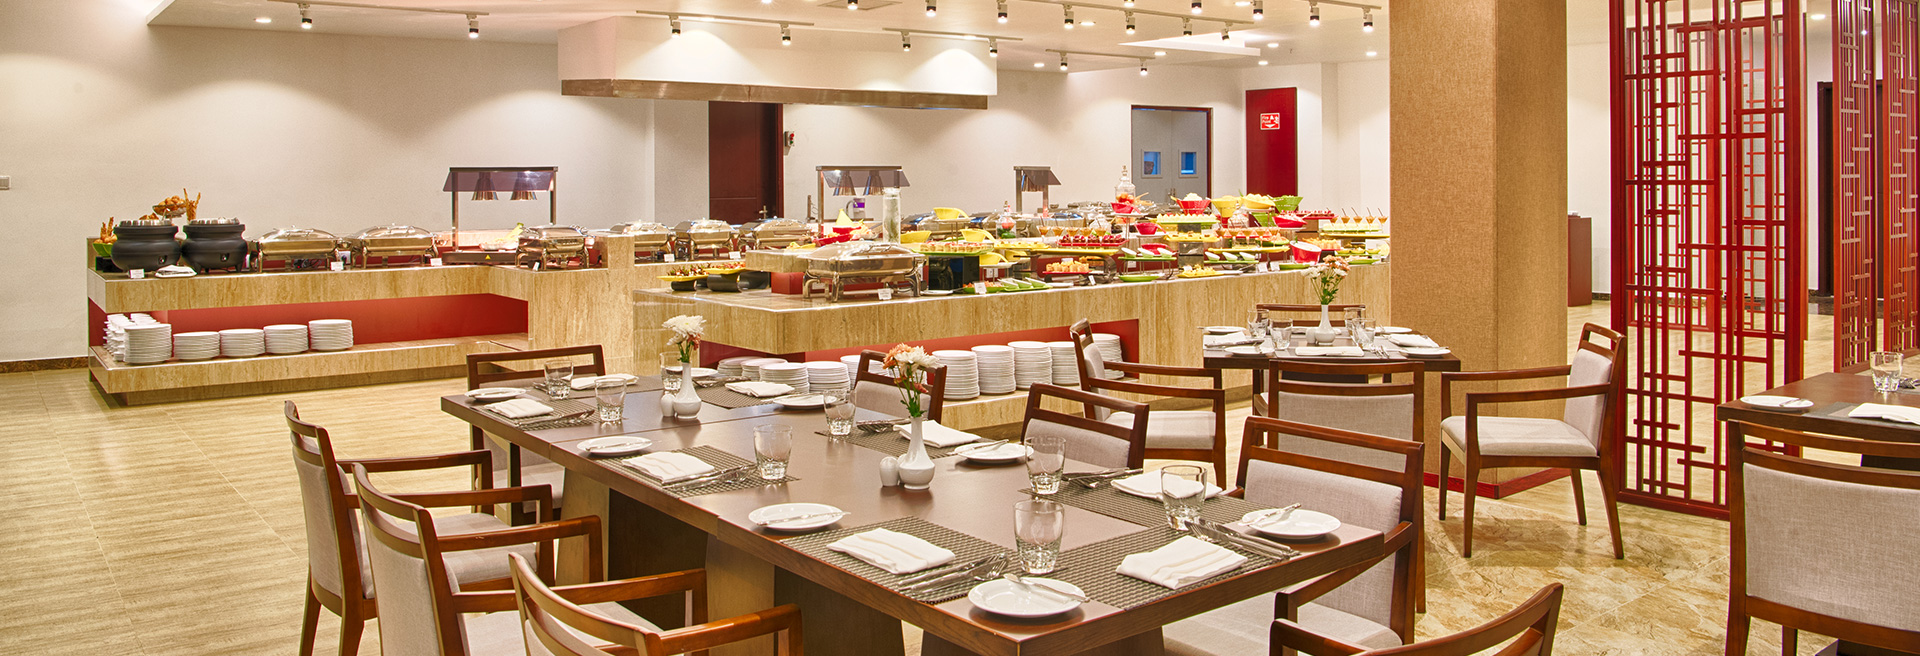 Image of All day dining restaurant